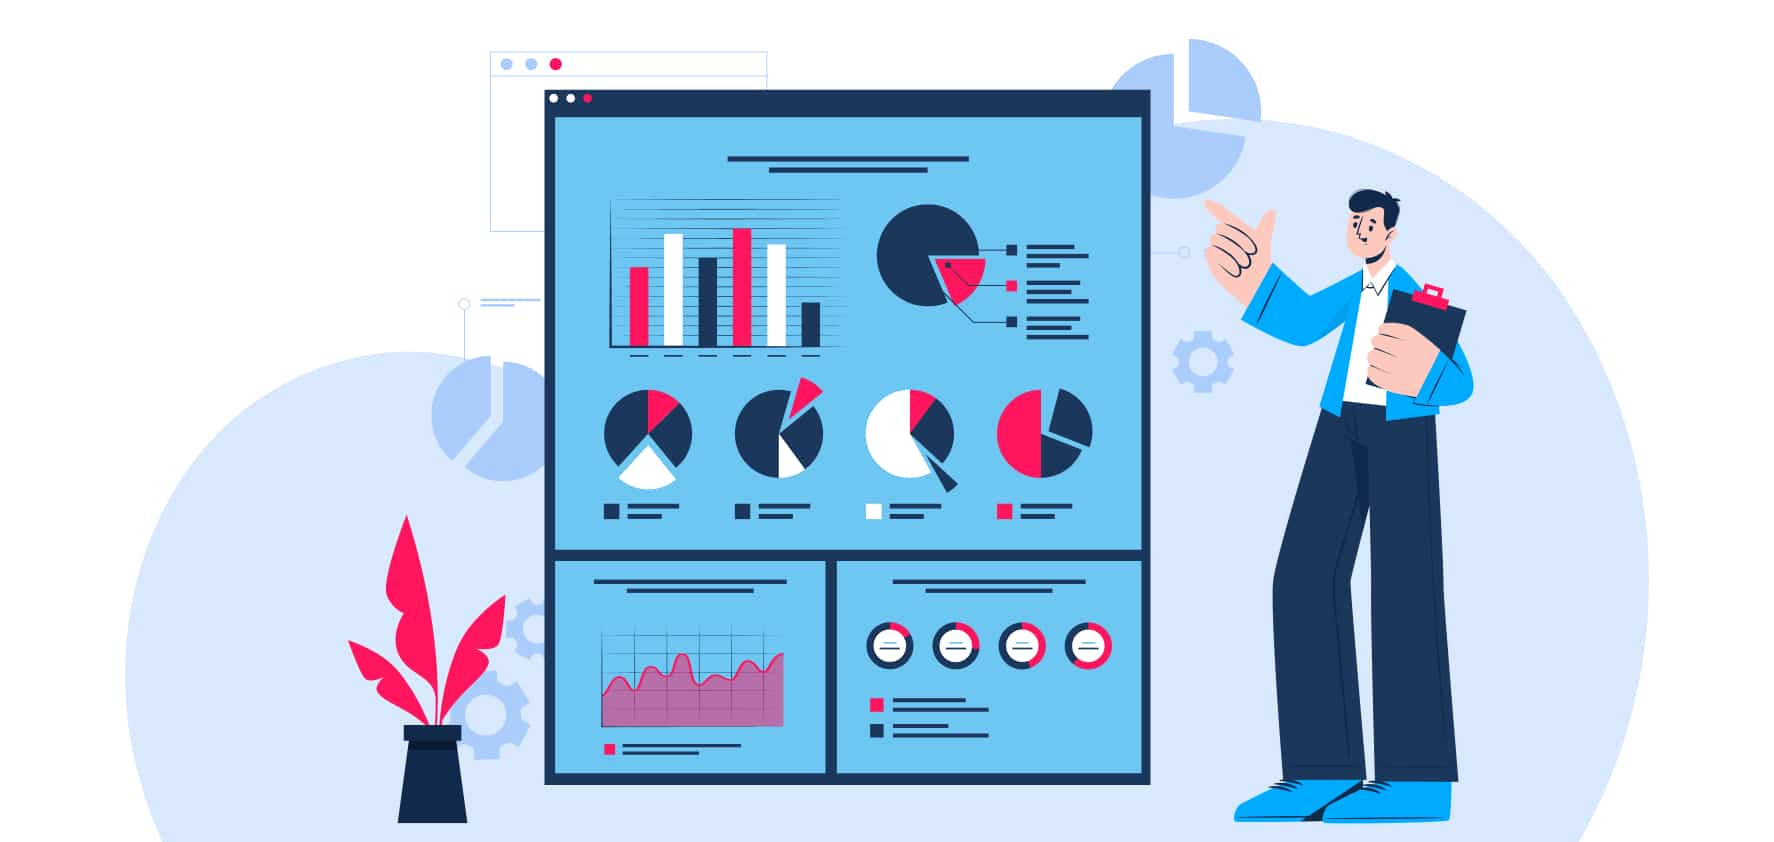 Business Analyst's role